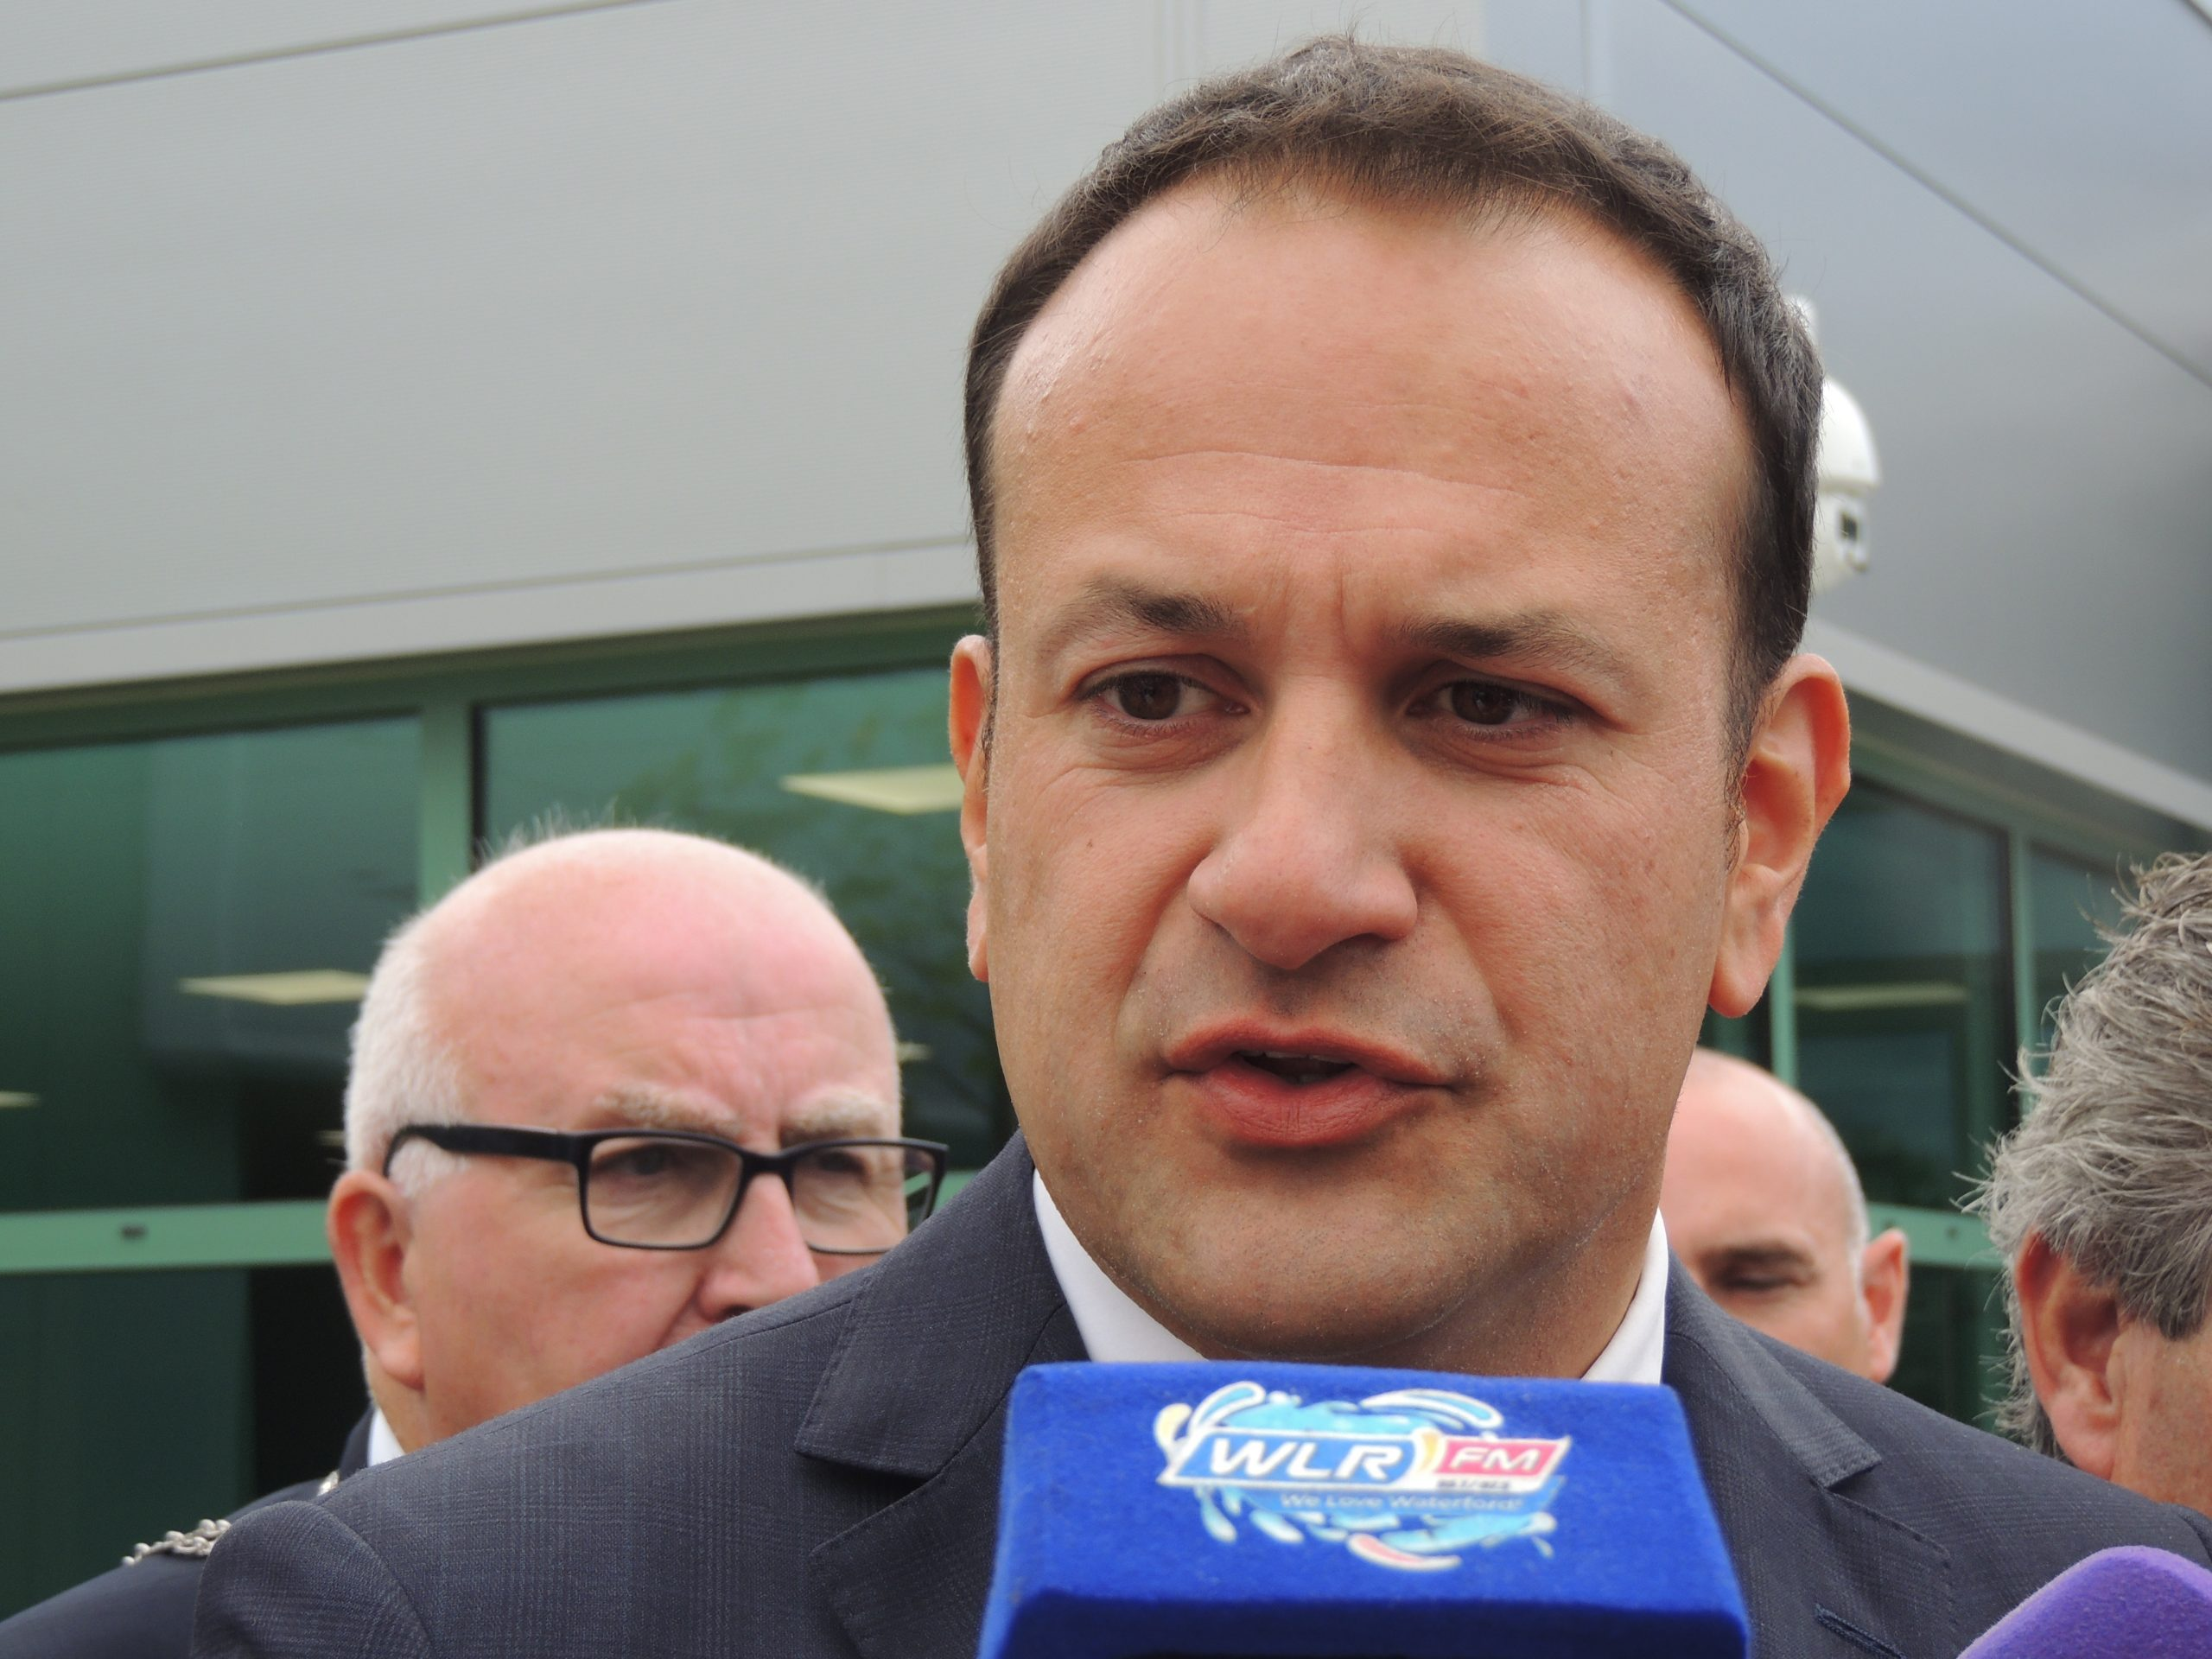 Taoiseach to lead Project Ireland 2040 regional event in Waterford today.